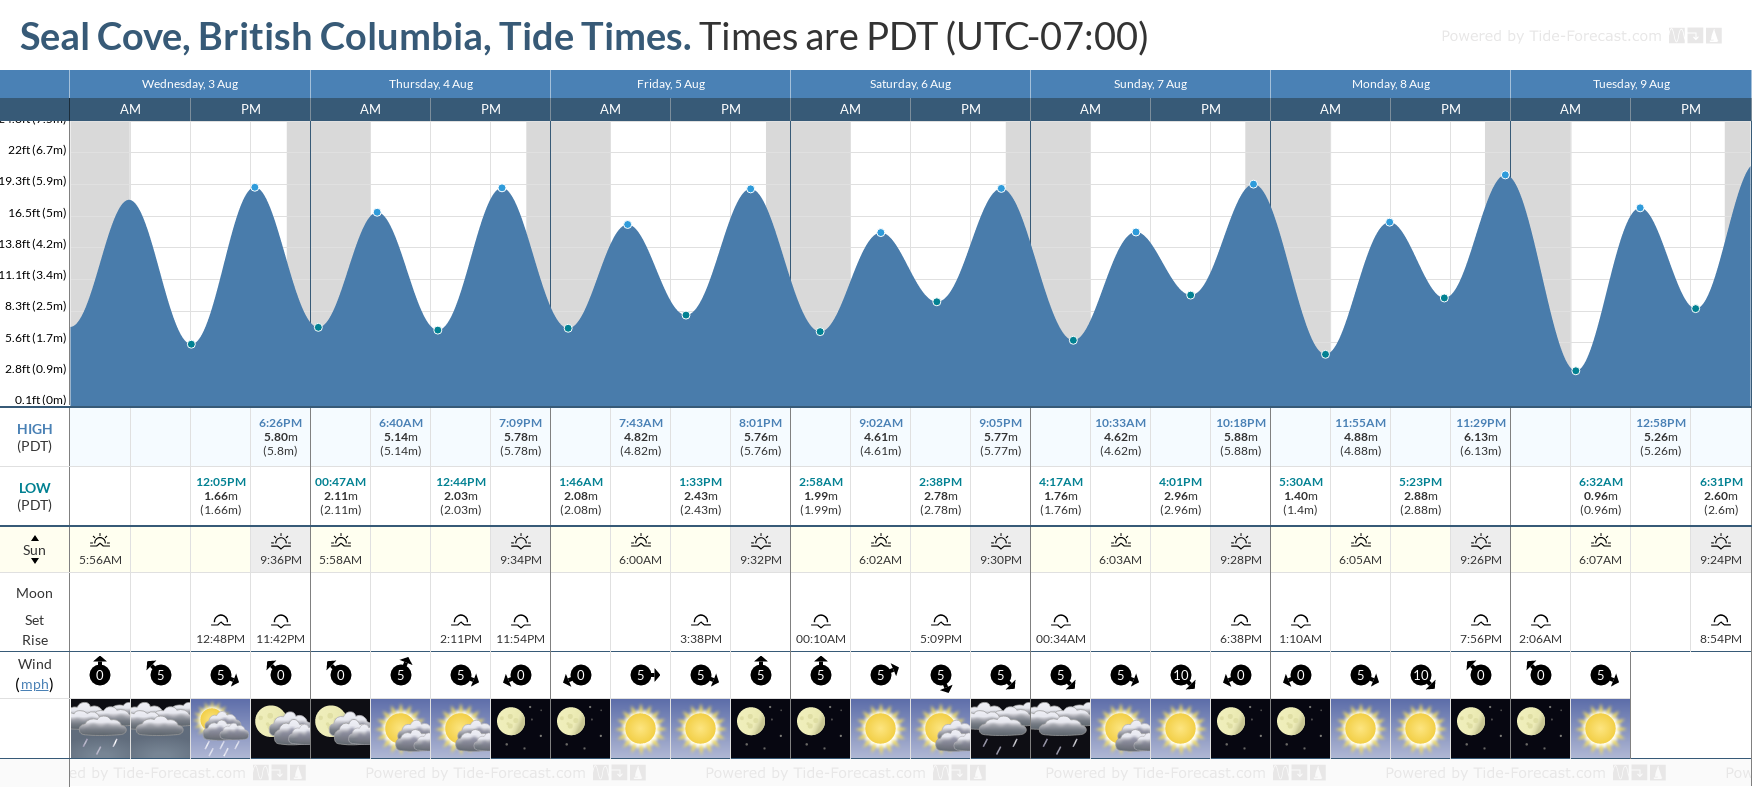 Seal Cove, British Columbia Tide Chart including high and low tide tide times for the next 7 days